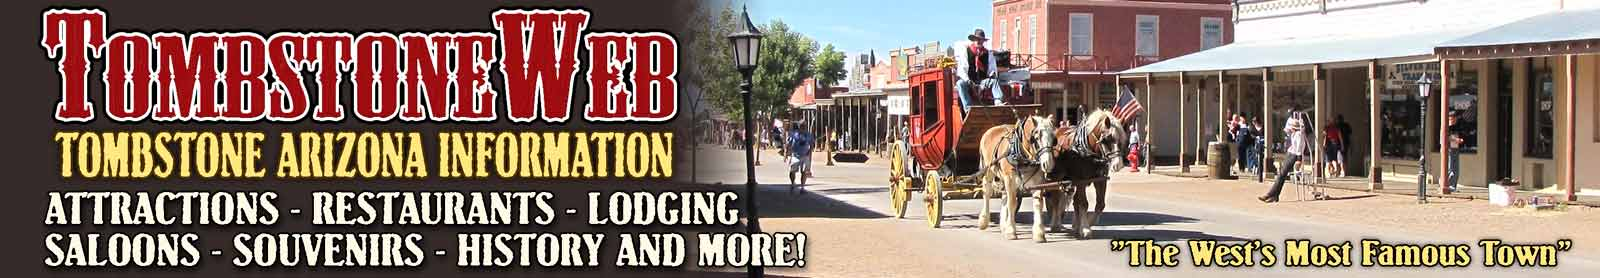 Tombstone Arizona Information